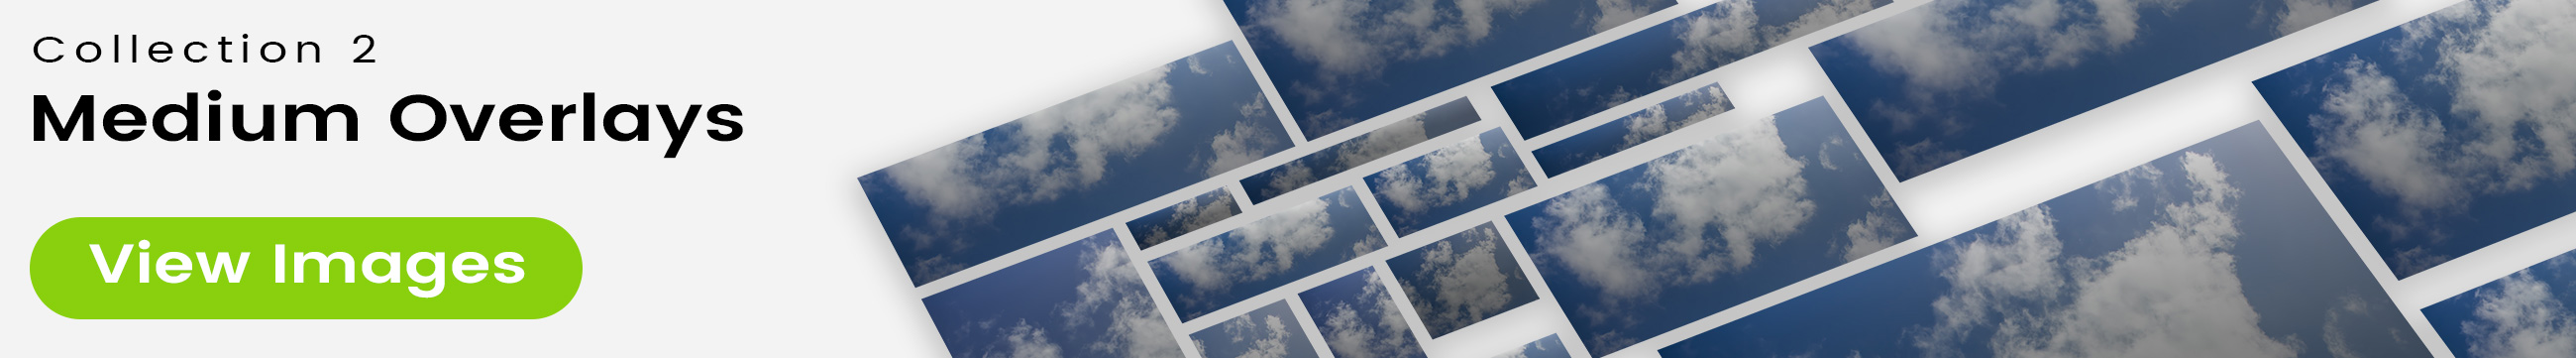 See 25 bonus images included with clouds stock image 9485. Collection 2 of 4 features a medium-dark overlay design.